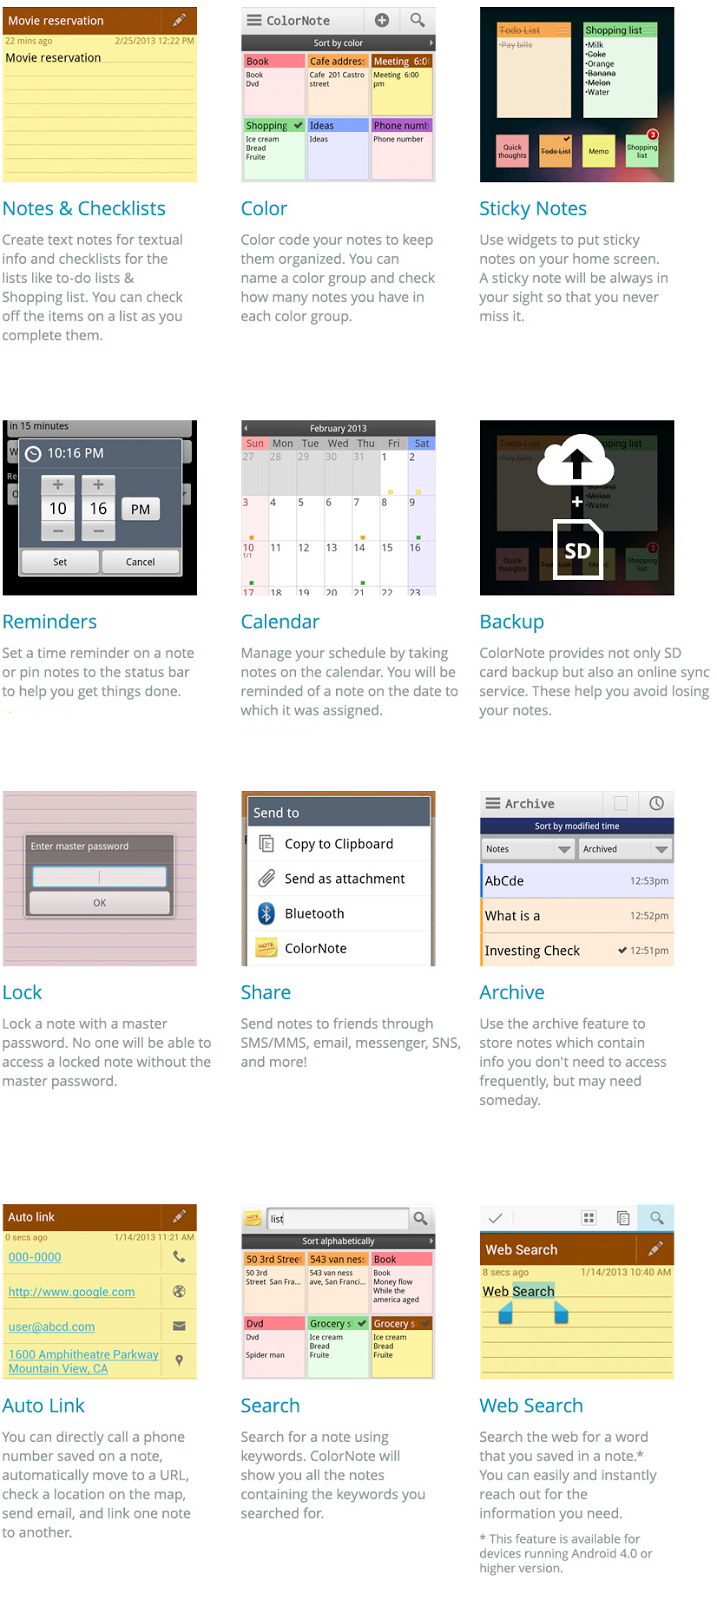 Social & Mobile, Inc : How to use ColorNote